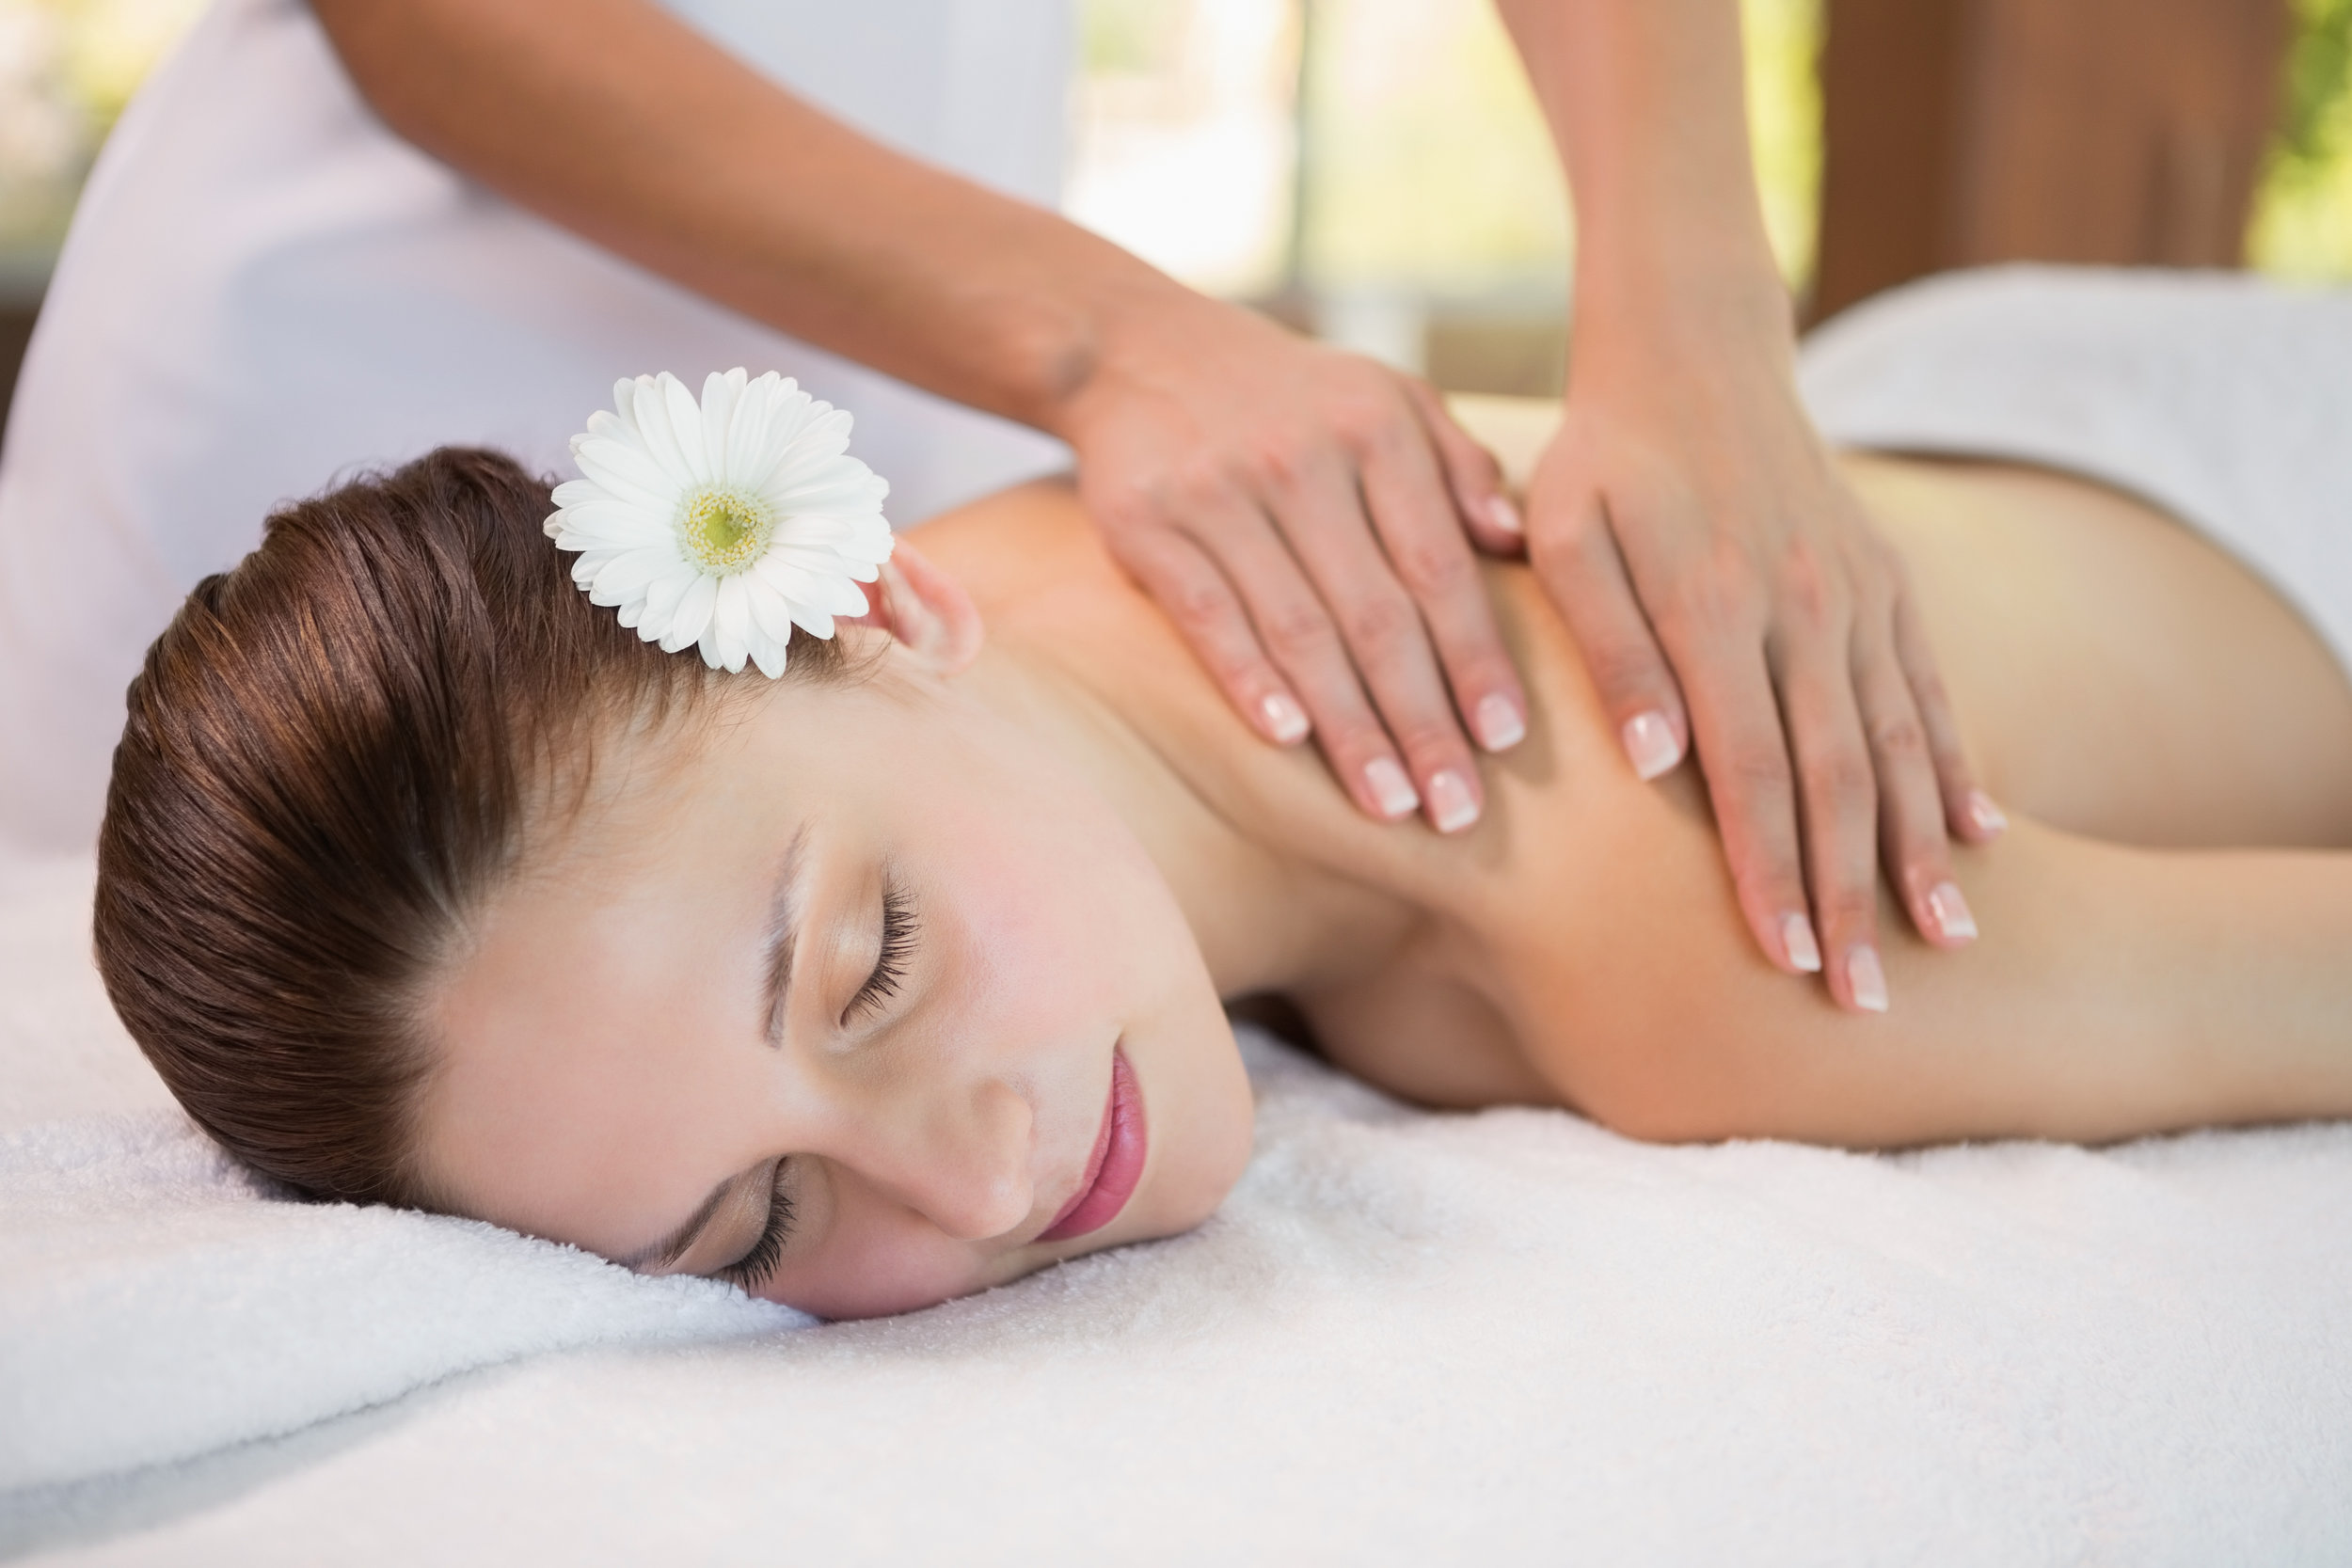 Serenity In The City £90 60 mins - This package involves a back exfoliation, a back neck and shoulder massage,a radiance boosting facial, a scalp massage and a hand and arm massage.Then enjoy a delicious afternoon tea served in the View Bar.